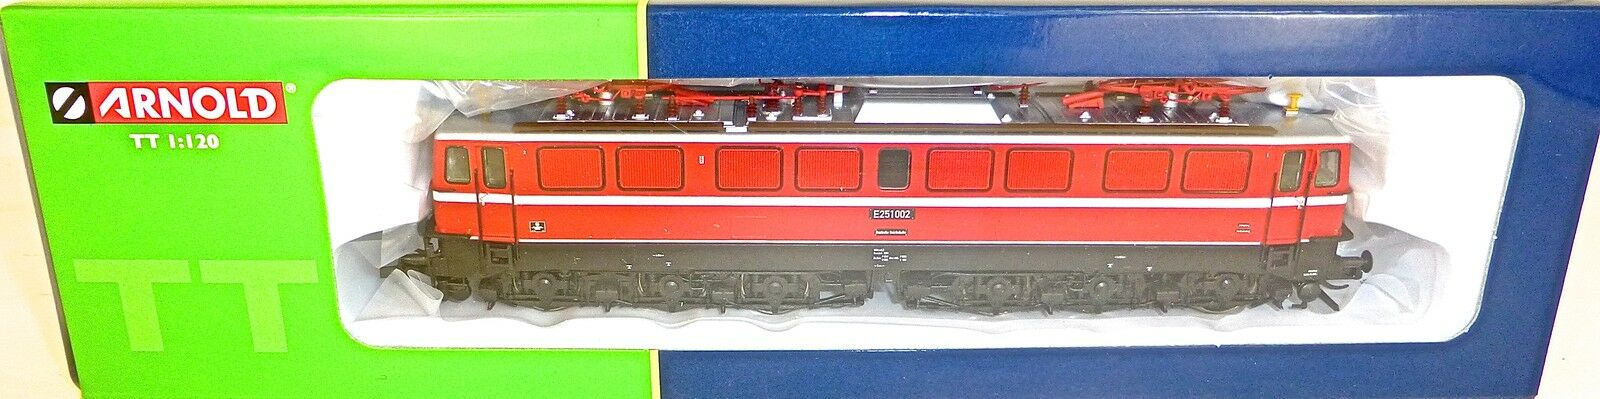 E 251 002 Fair paintwork Dr Red ep3 DSS Arnold hns9029 TT 1 120 Special Series Μ